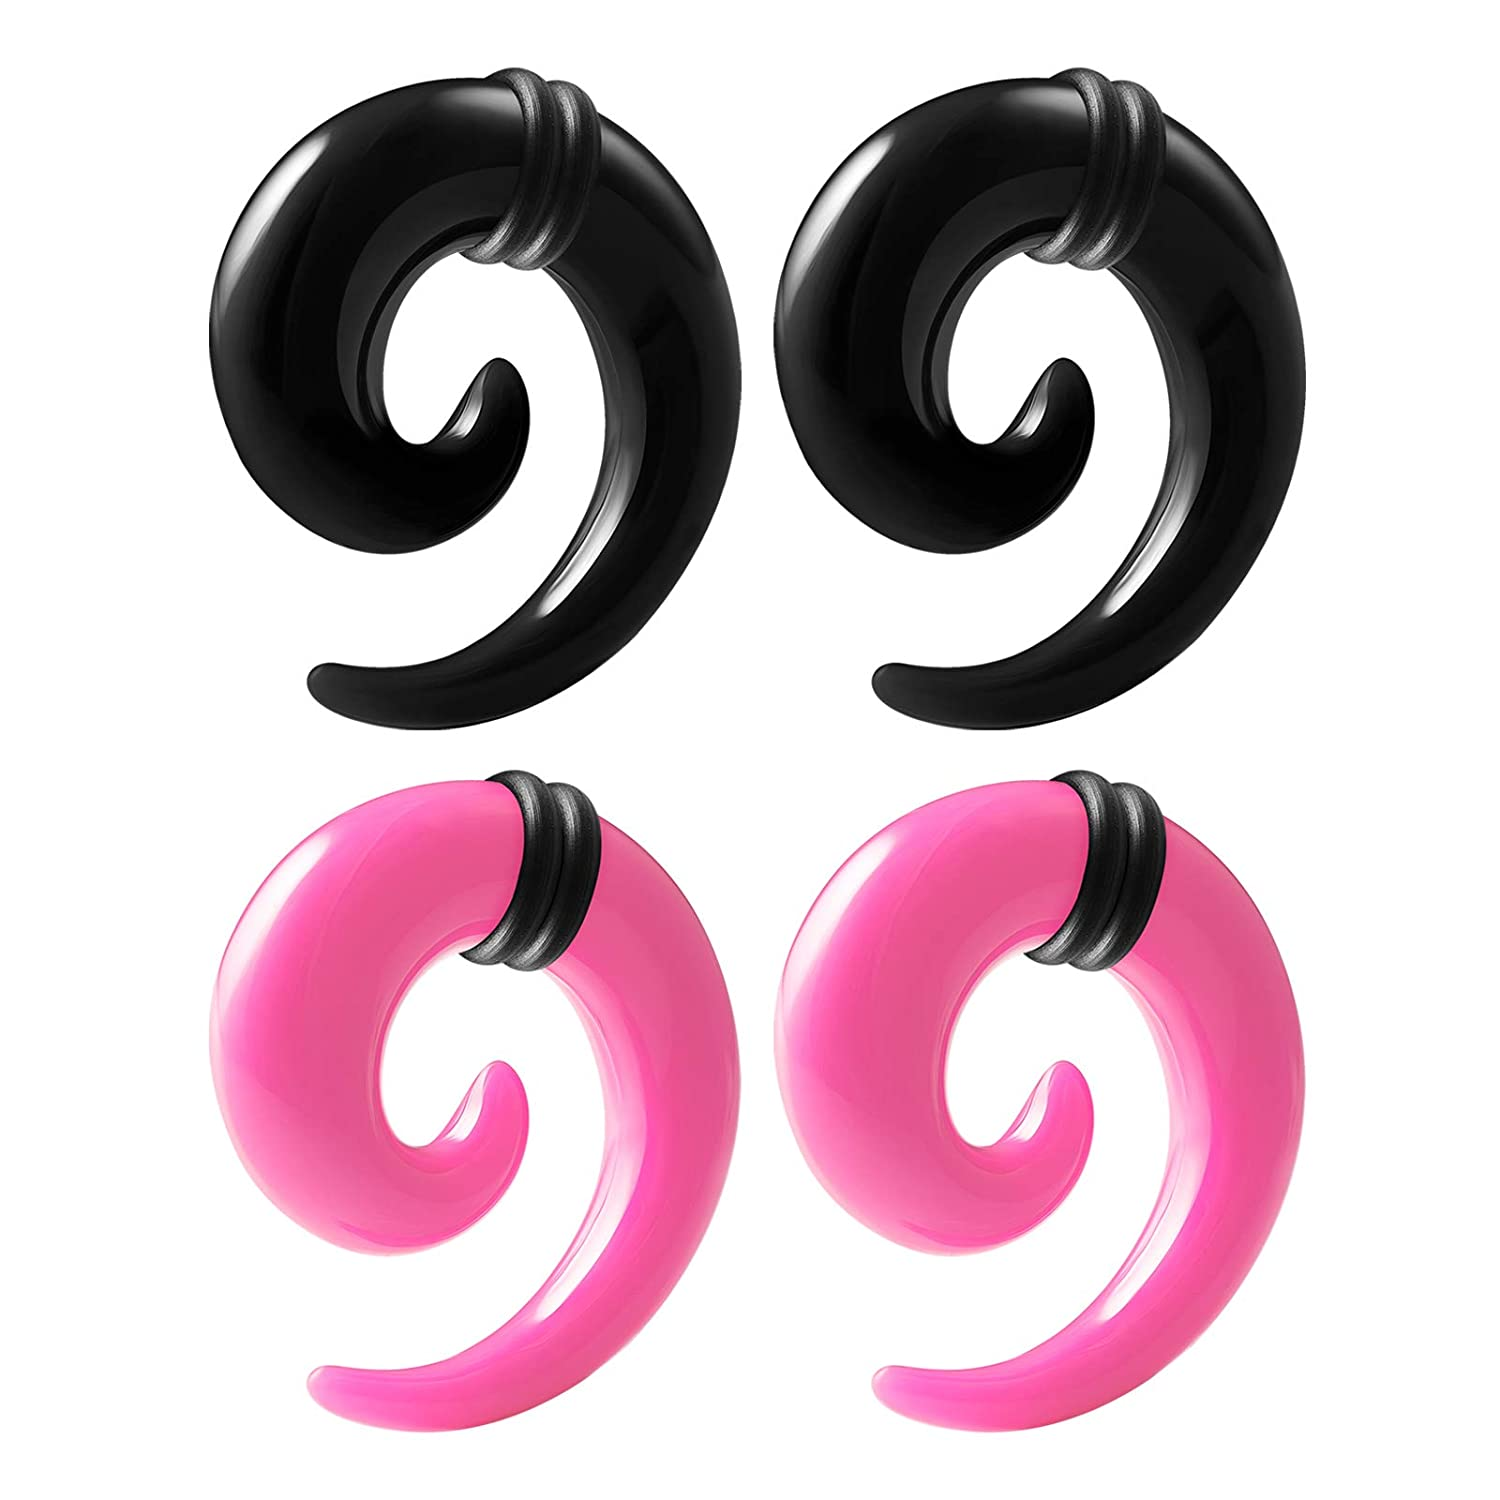 PAIR-Tapers Spiral Black//Pink Acrylic 08mm//0 Gauge Body Jewelry